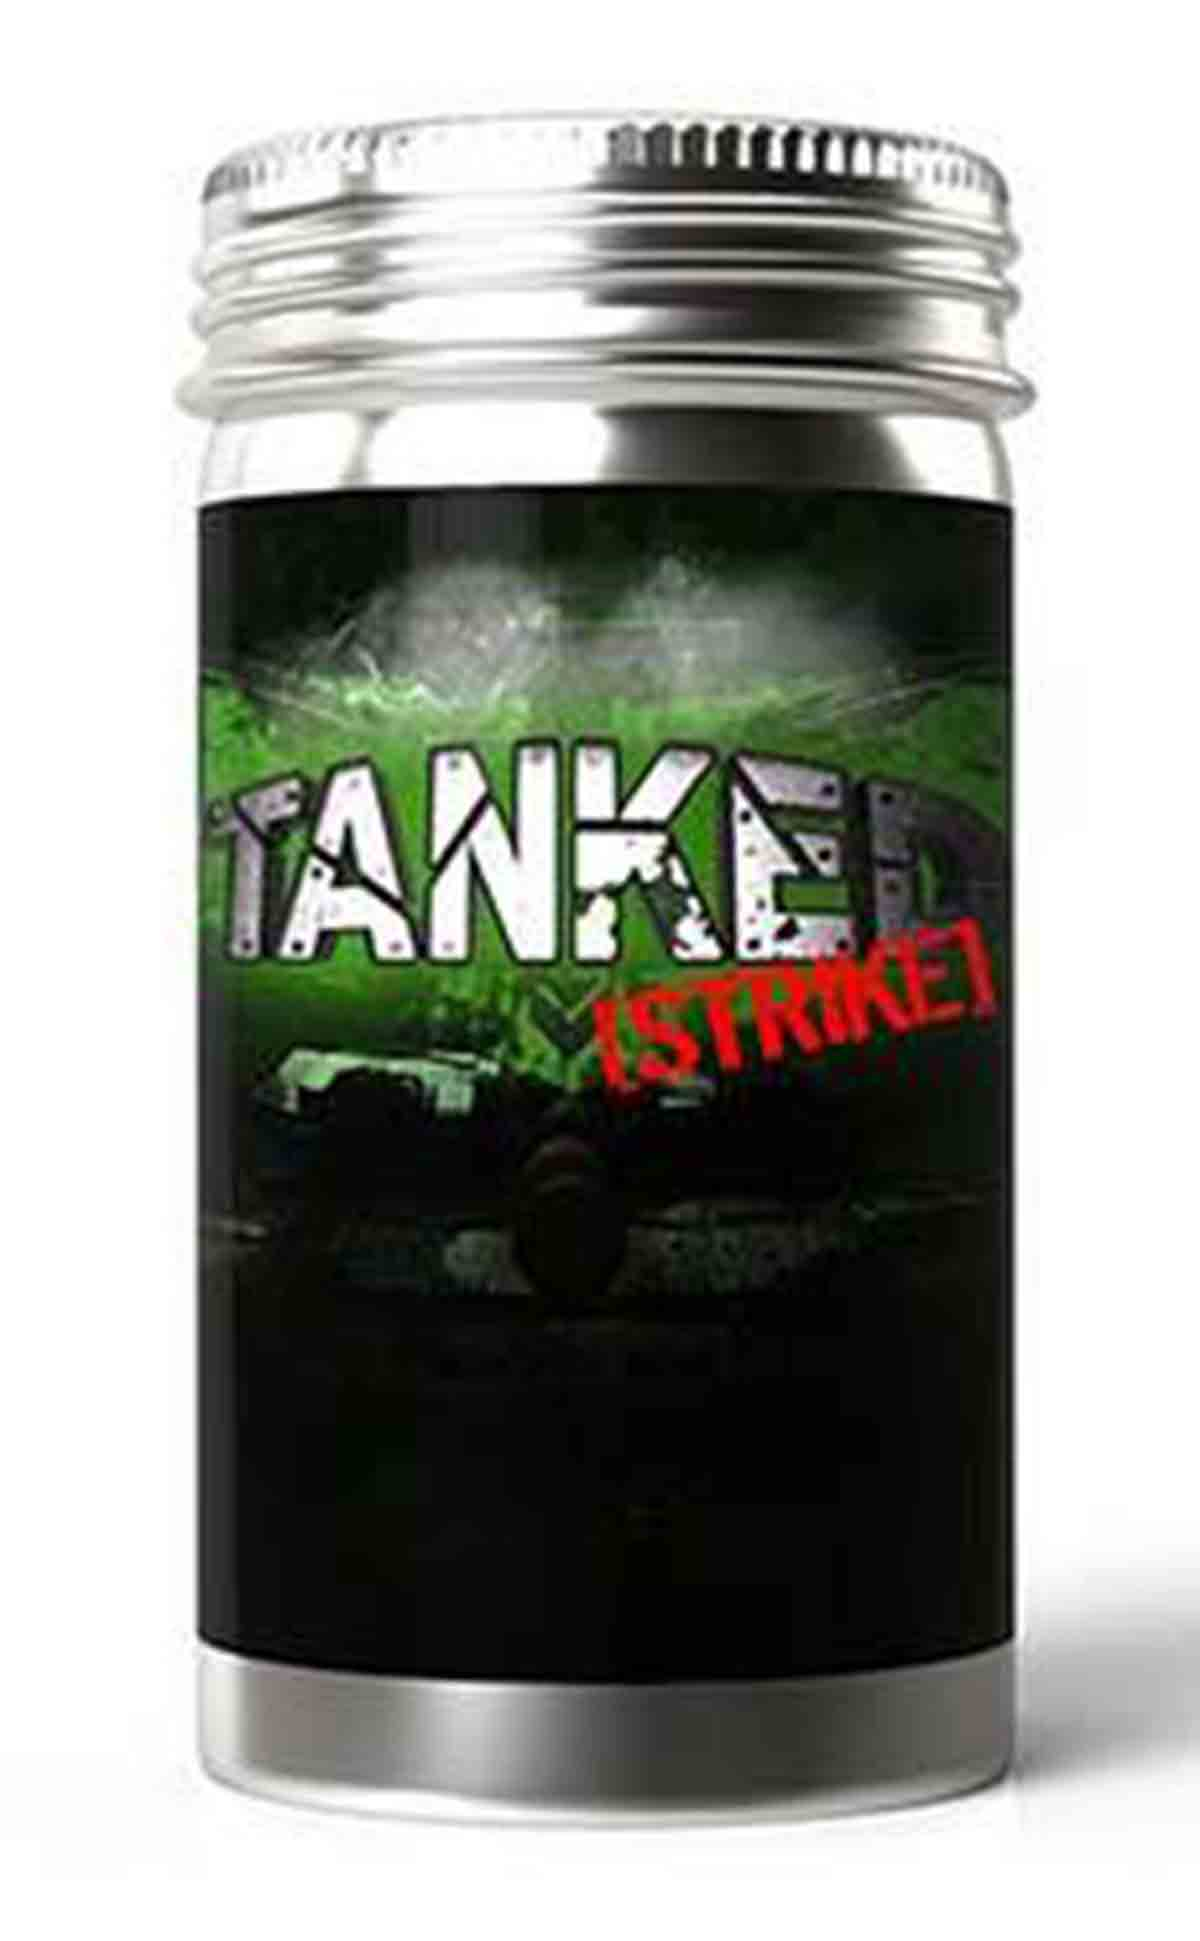 Tanked Strike